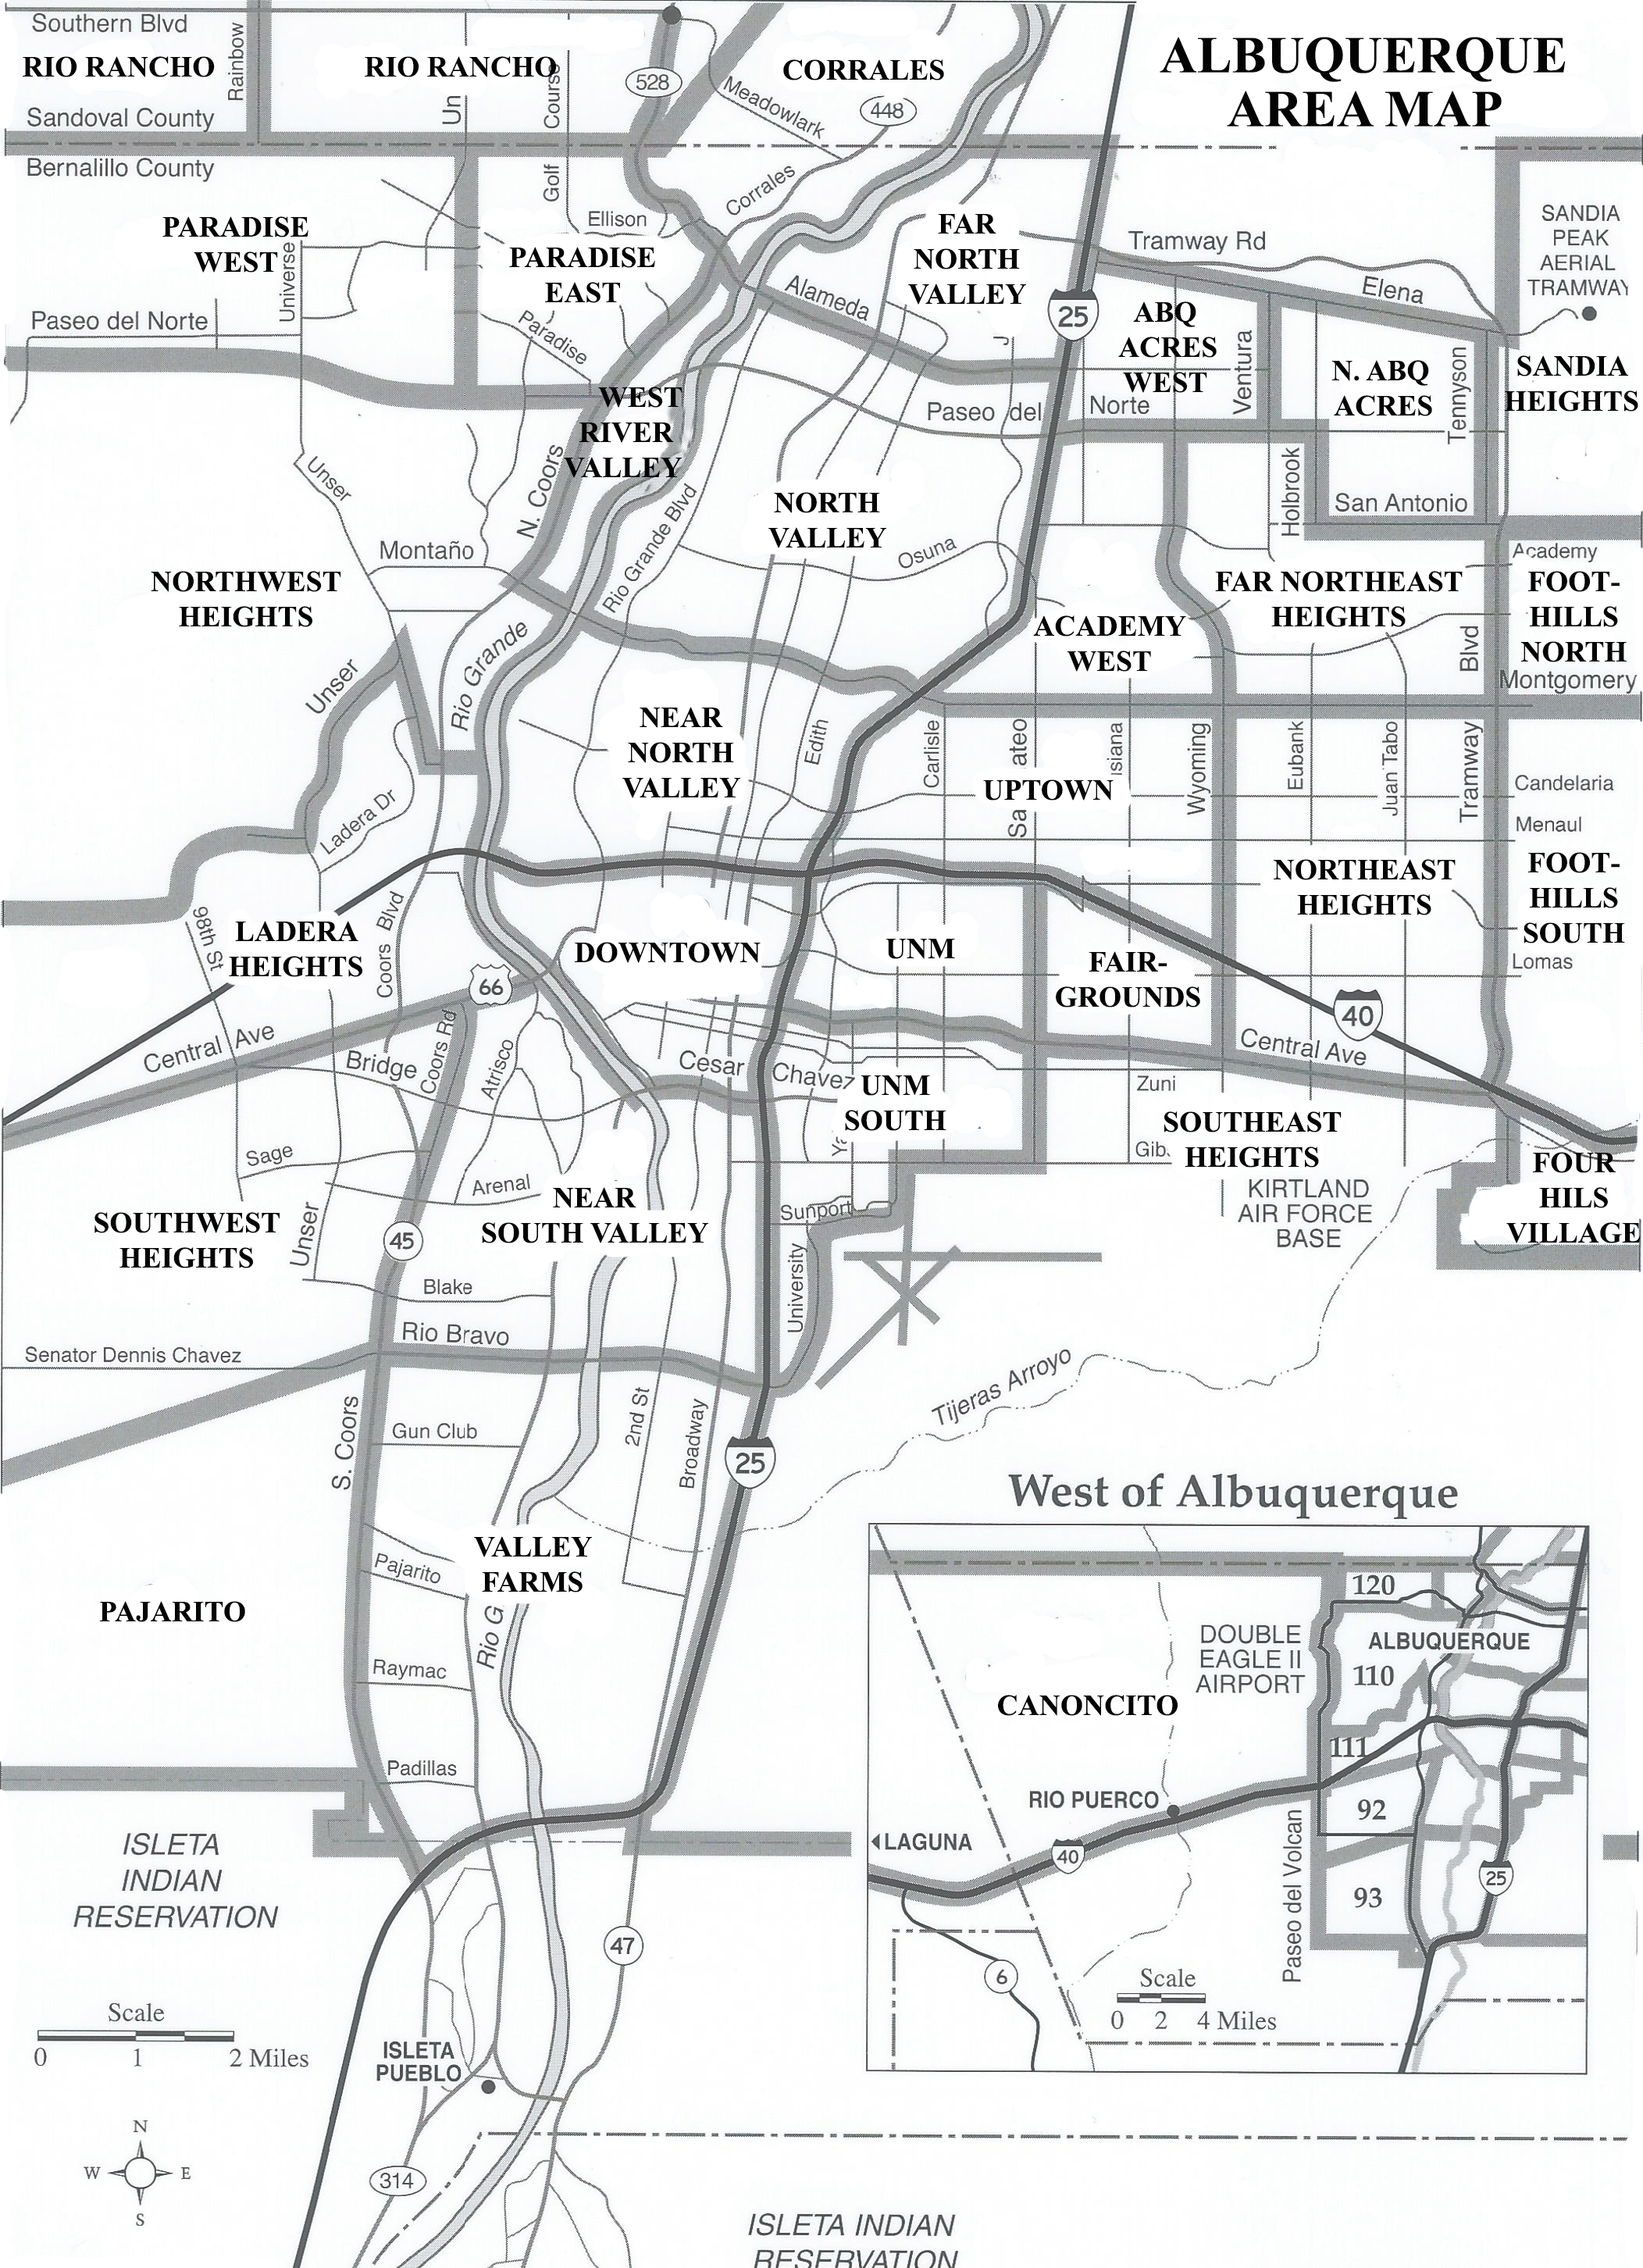 Map Of The Albuquerque Area